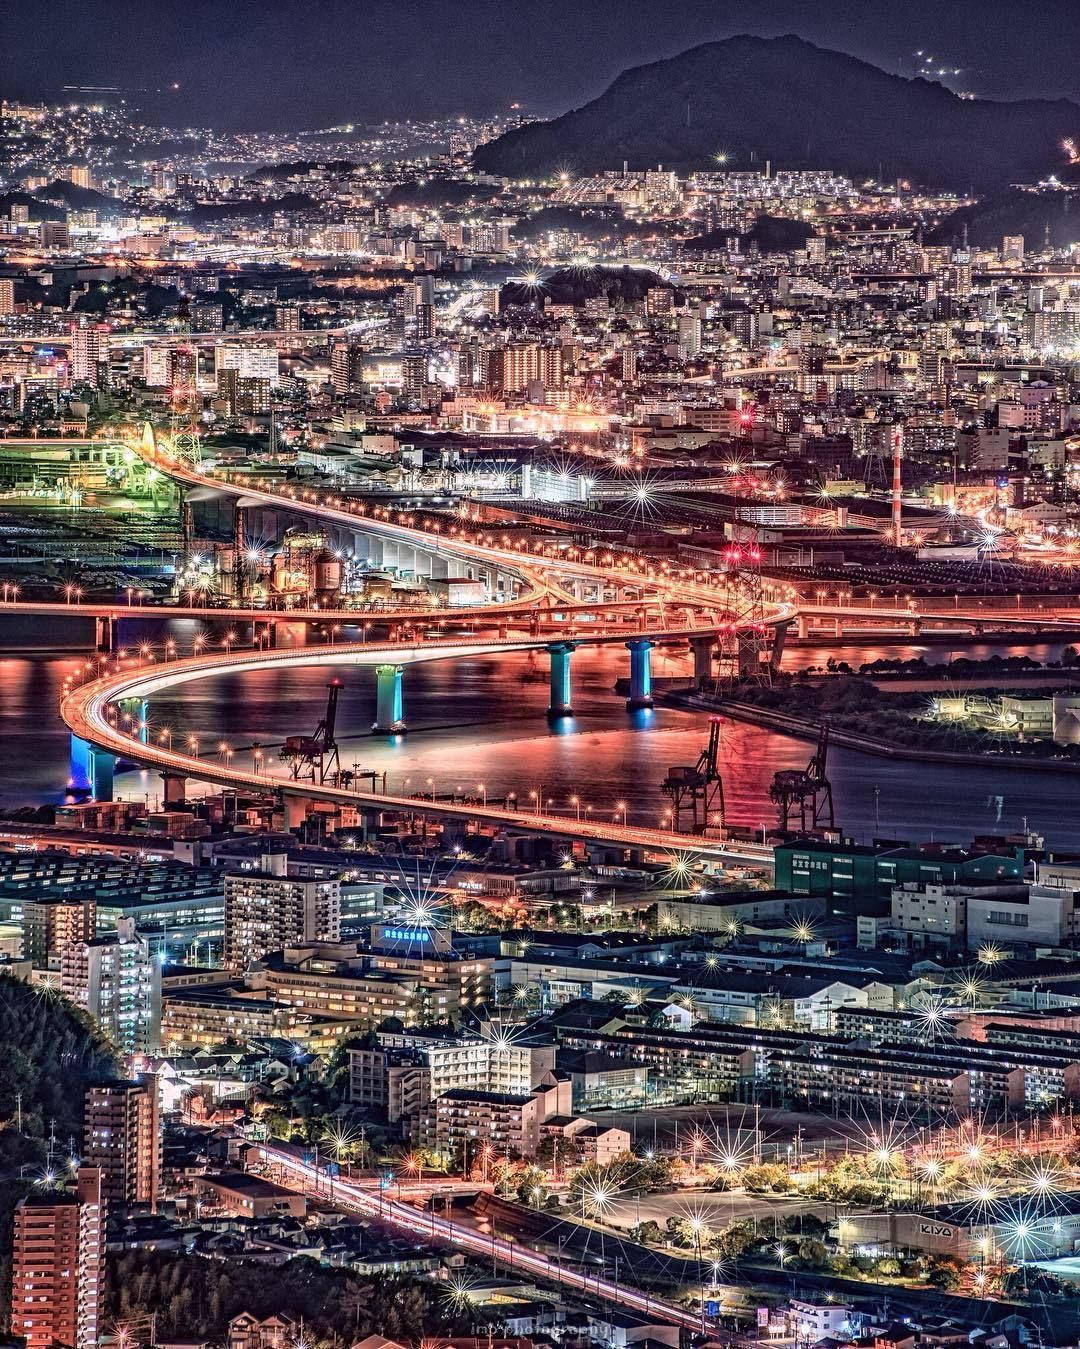 Night View Of Hiroshima By Imo Z As Showcased On Tokyo Camera